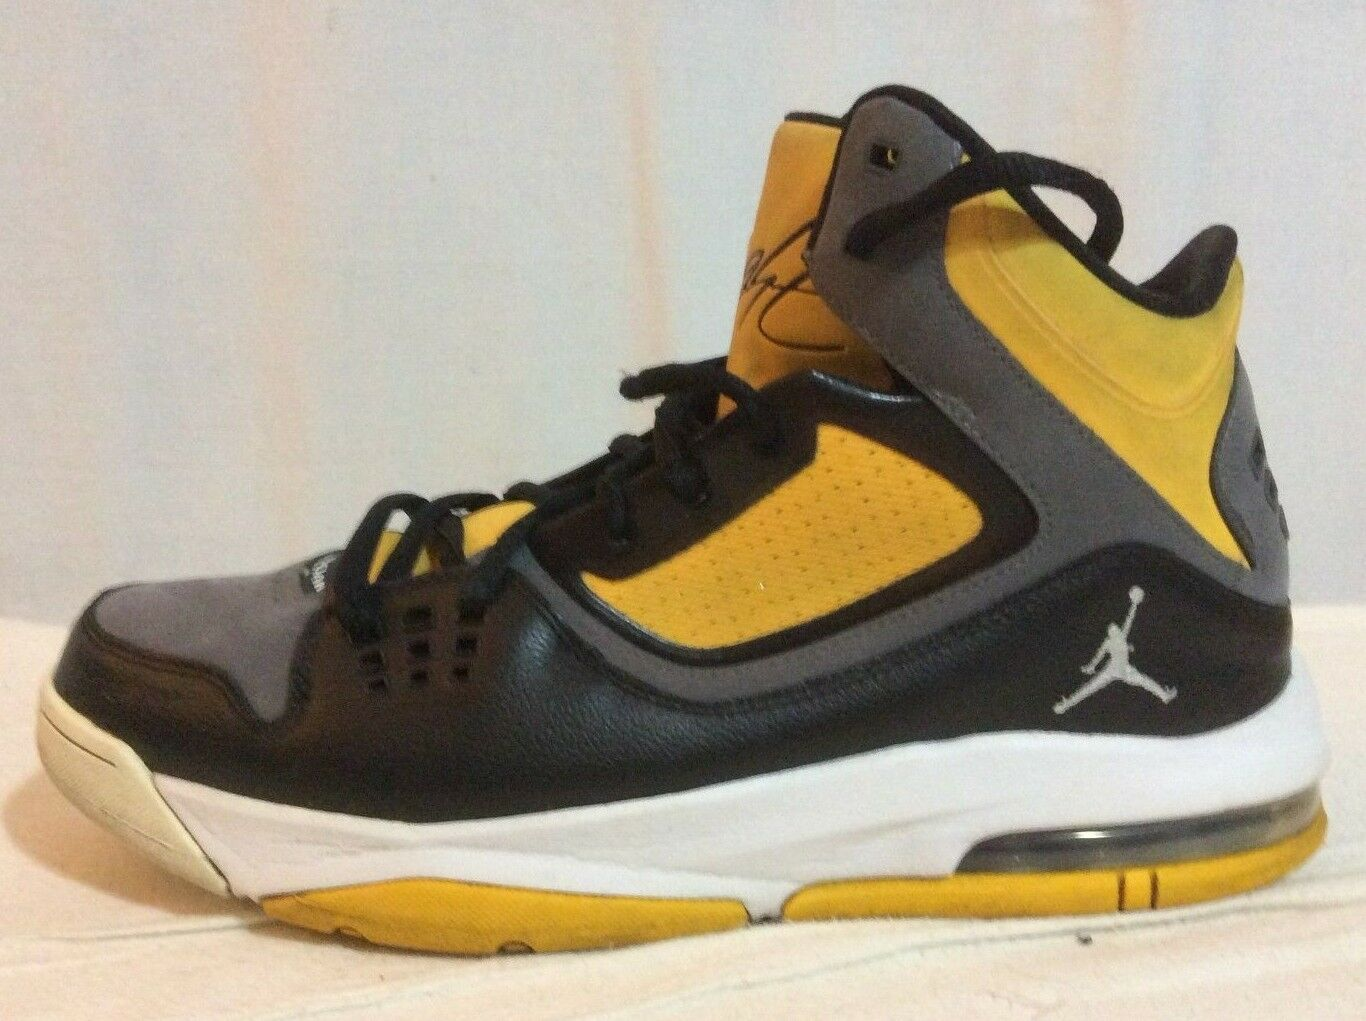 Nike Air Jordan Flight 23 RST Black Gray Gold 512234-035 US Comfortable The latest discount shoes for men and women